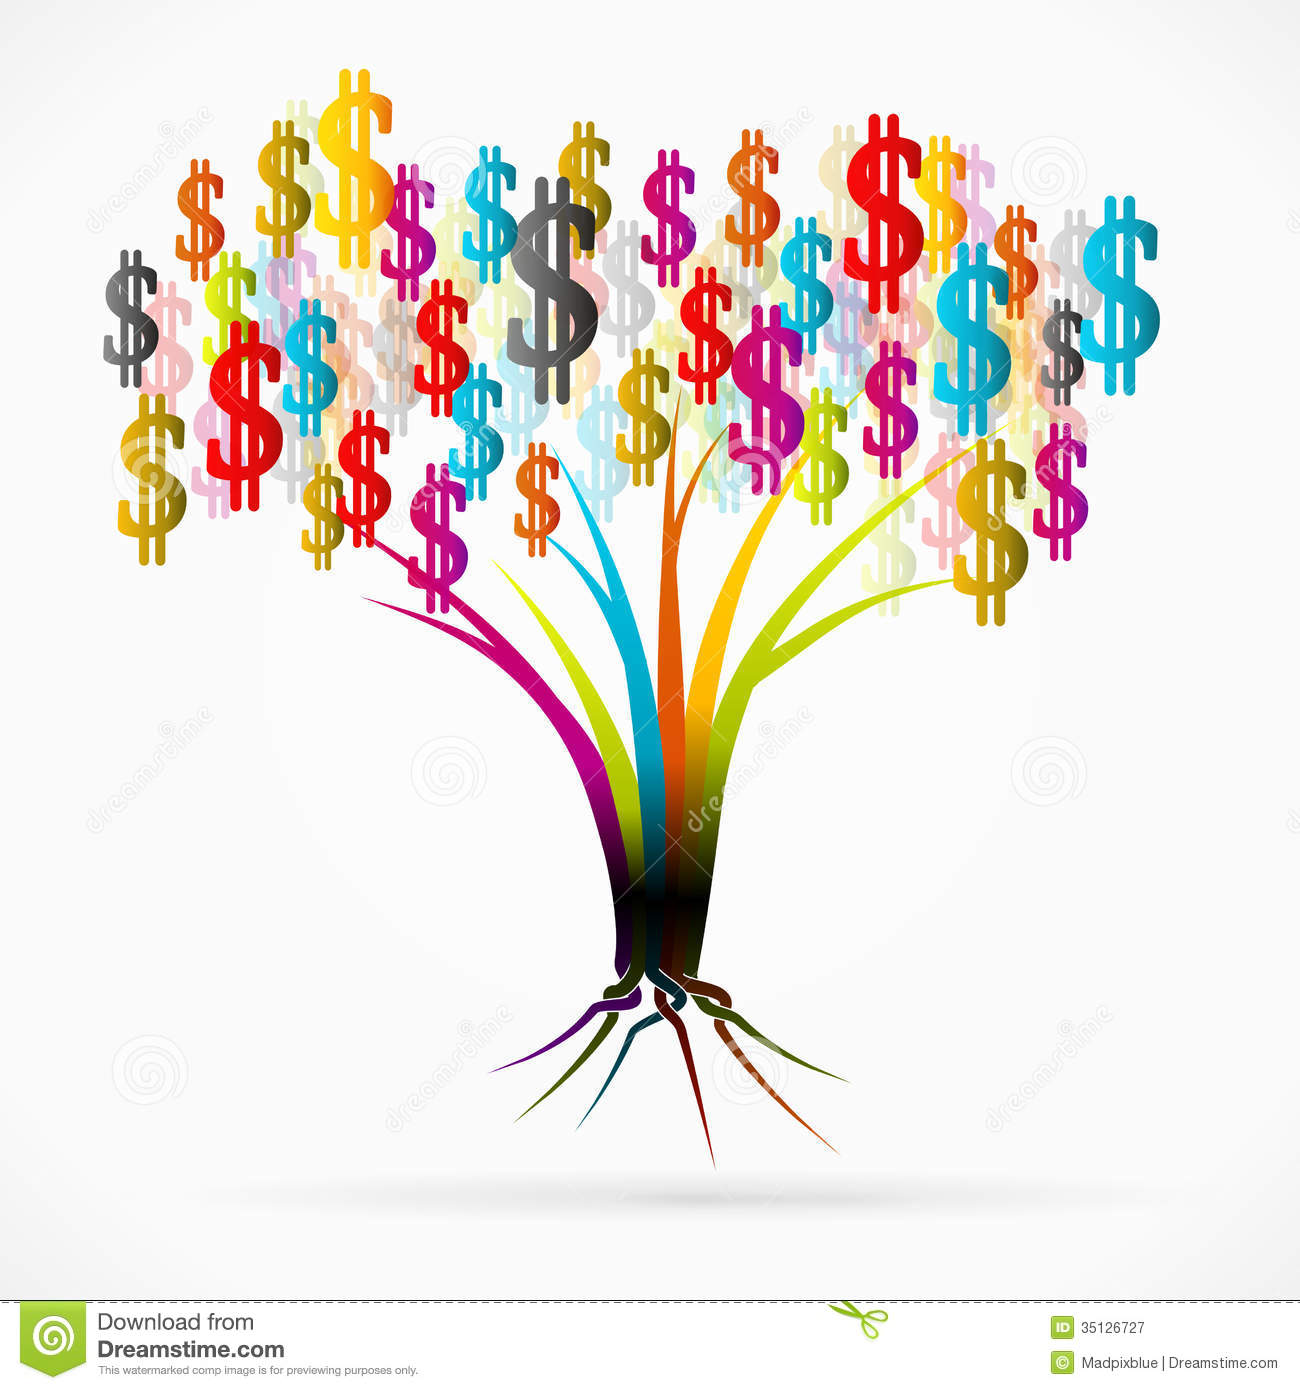 Vector Illustration Tree: Money Tree Stock Vector. Image Of Isolated, Background